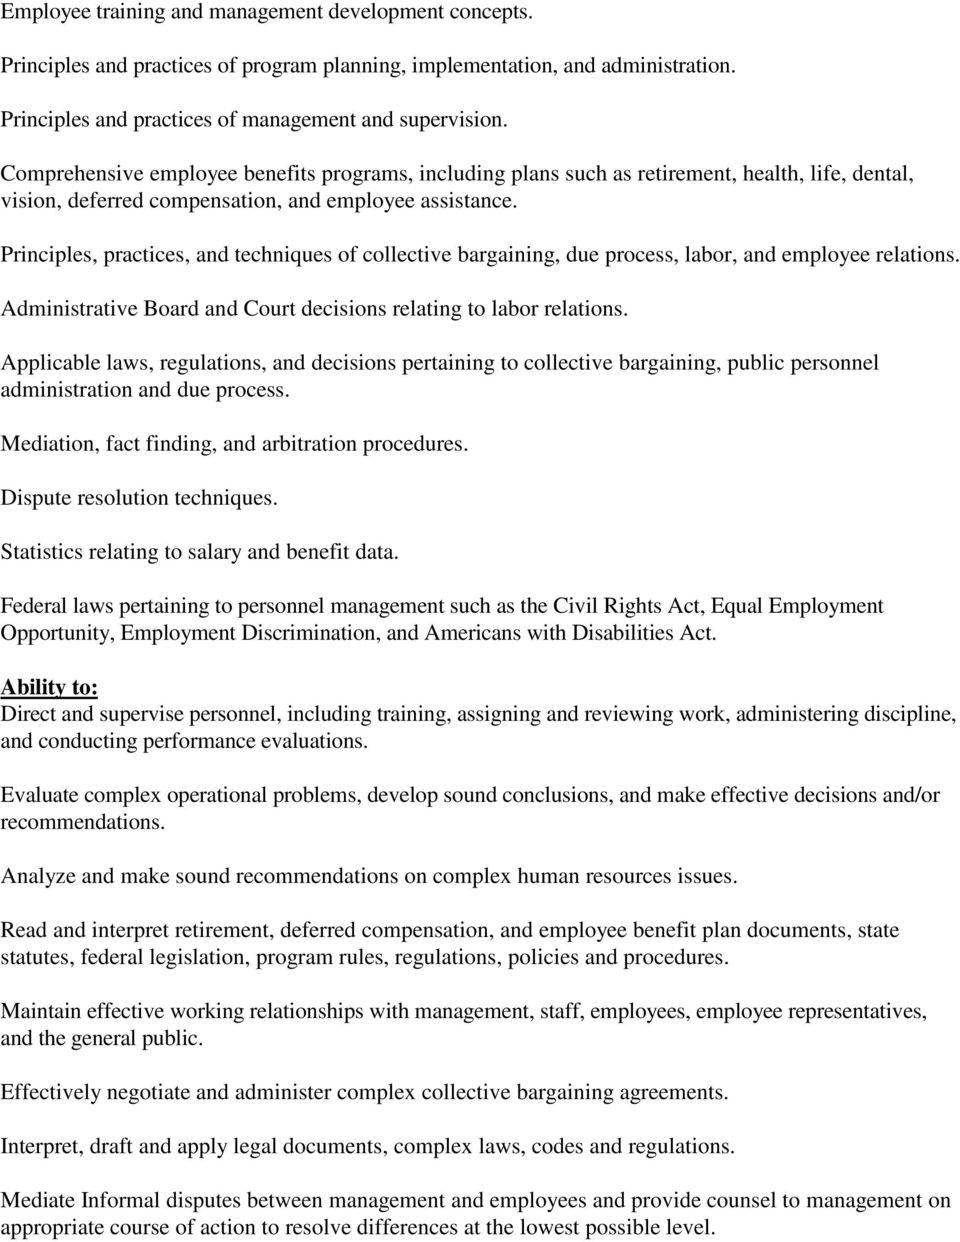 Principles, practices, and techniques of collective bargaining, due process, labor, and employee relations. Administrative Board and Court decisions relating to labor relations.